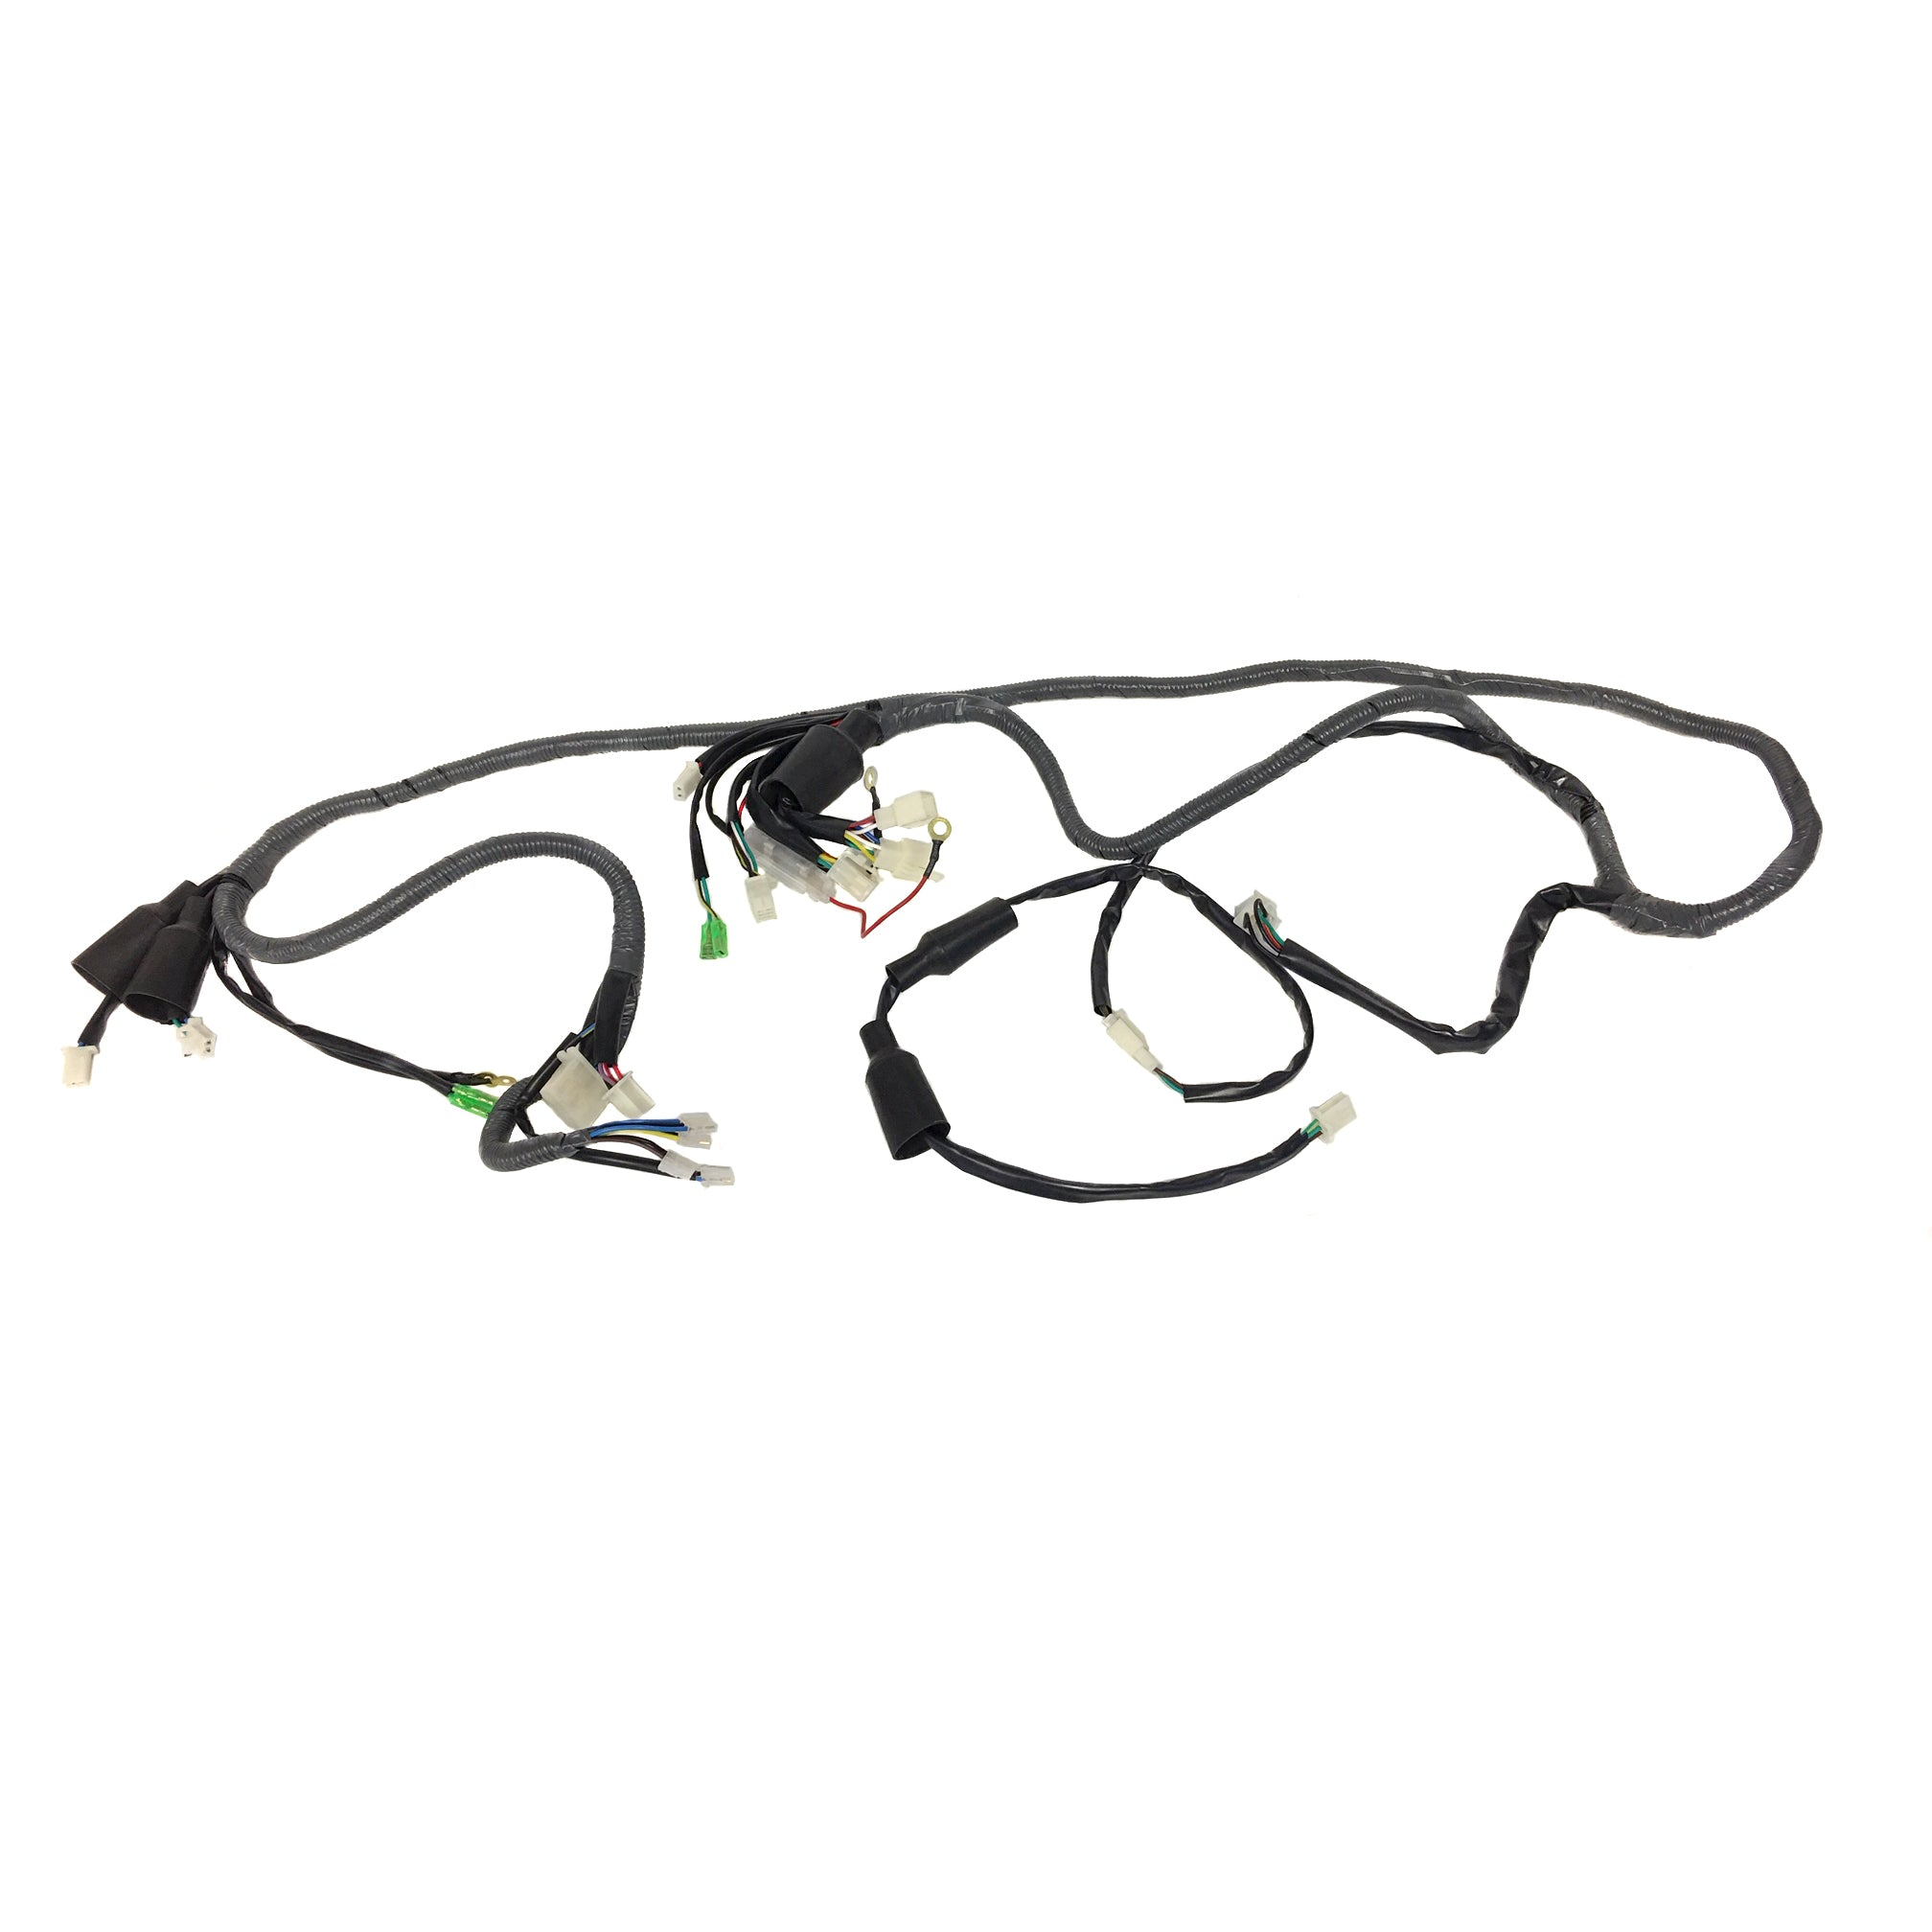 Electrical Wiring Harness for Tao Tao 110cc GK110, ATK110A